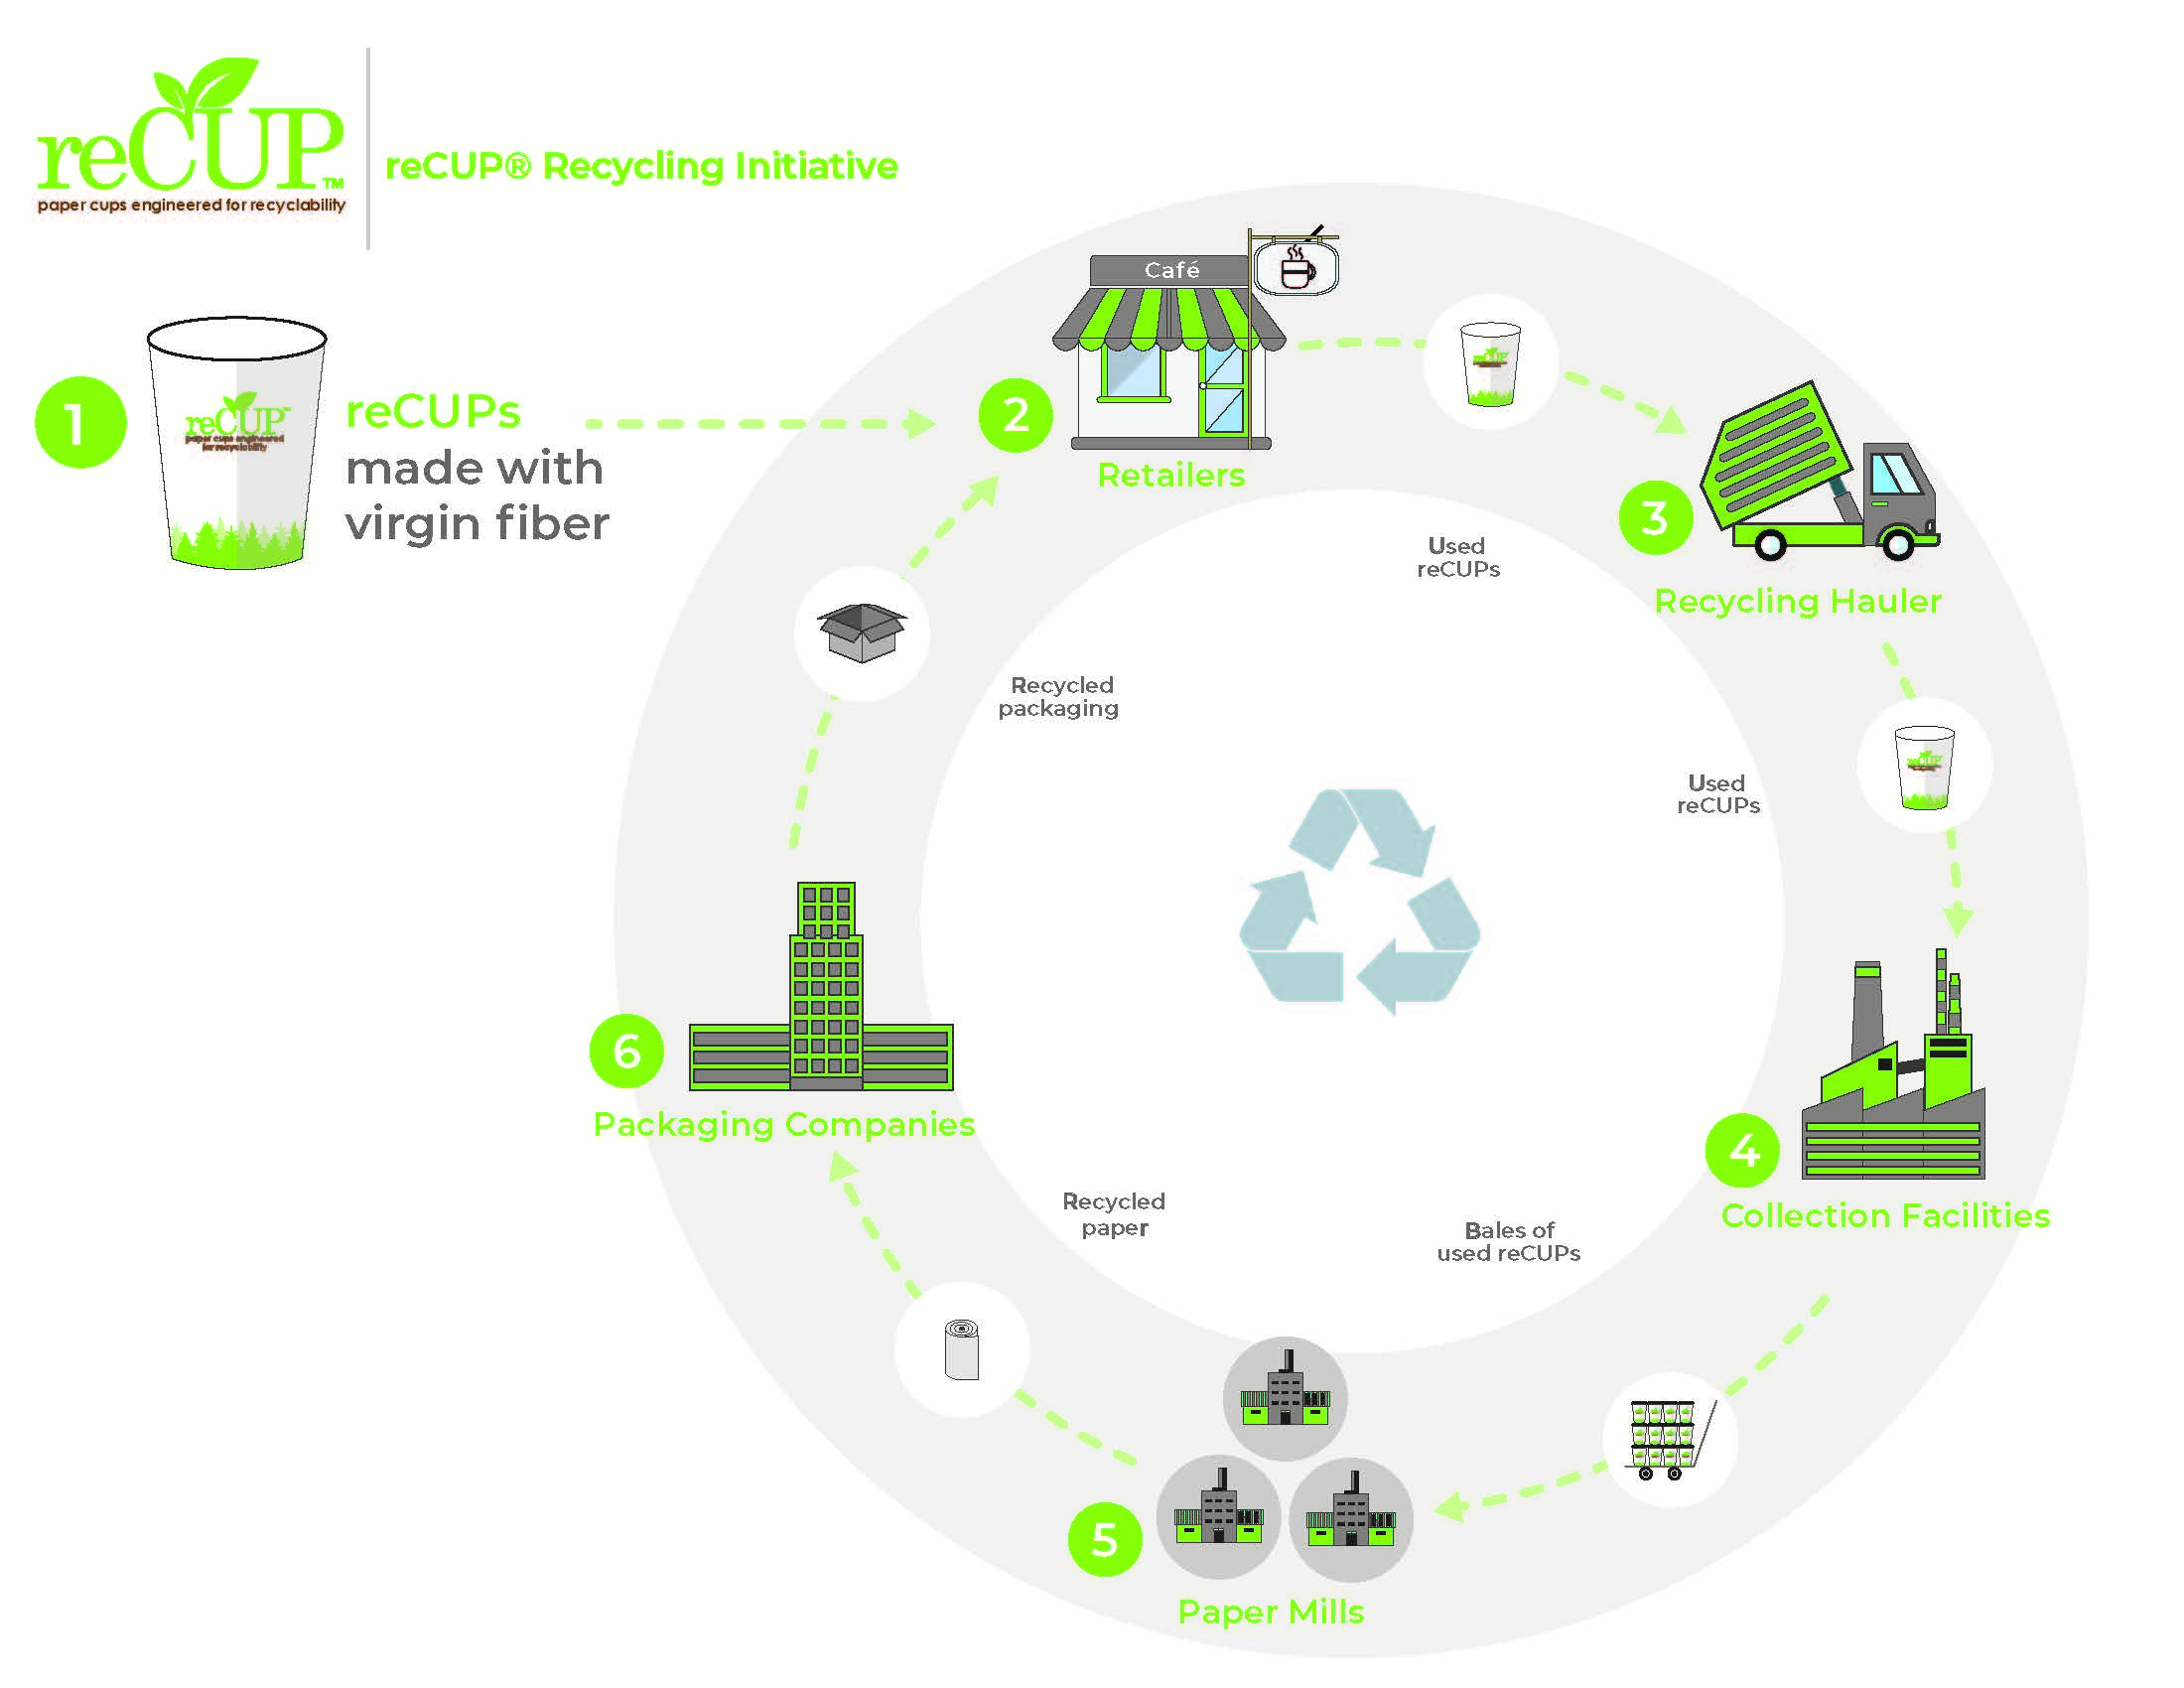 reCUP® Recycling Initiative takes major step addressing